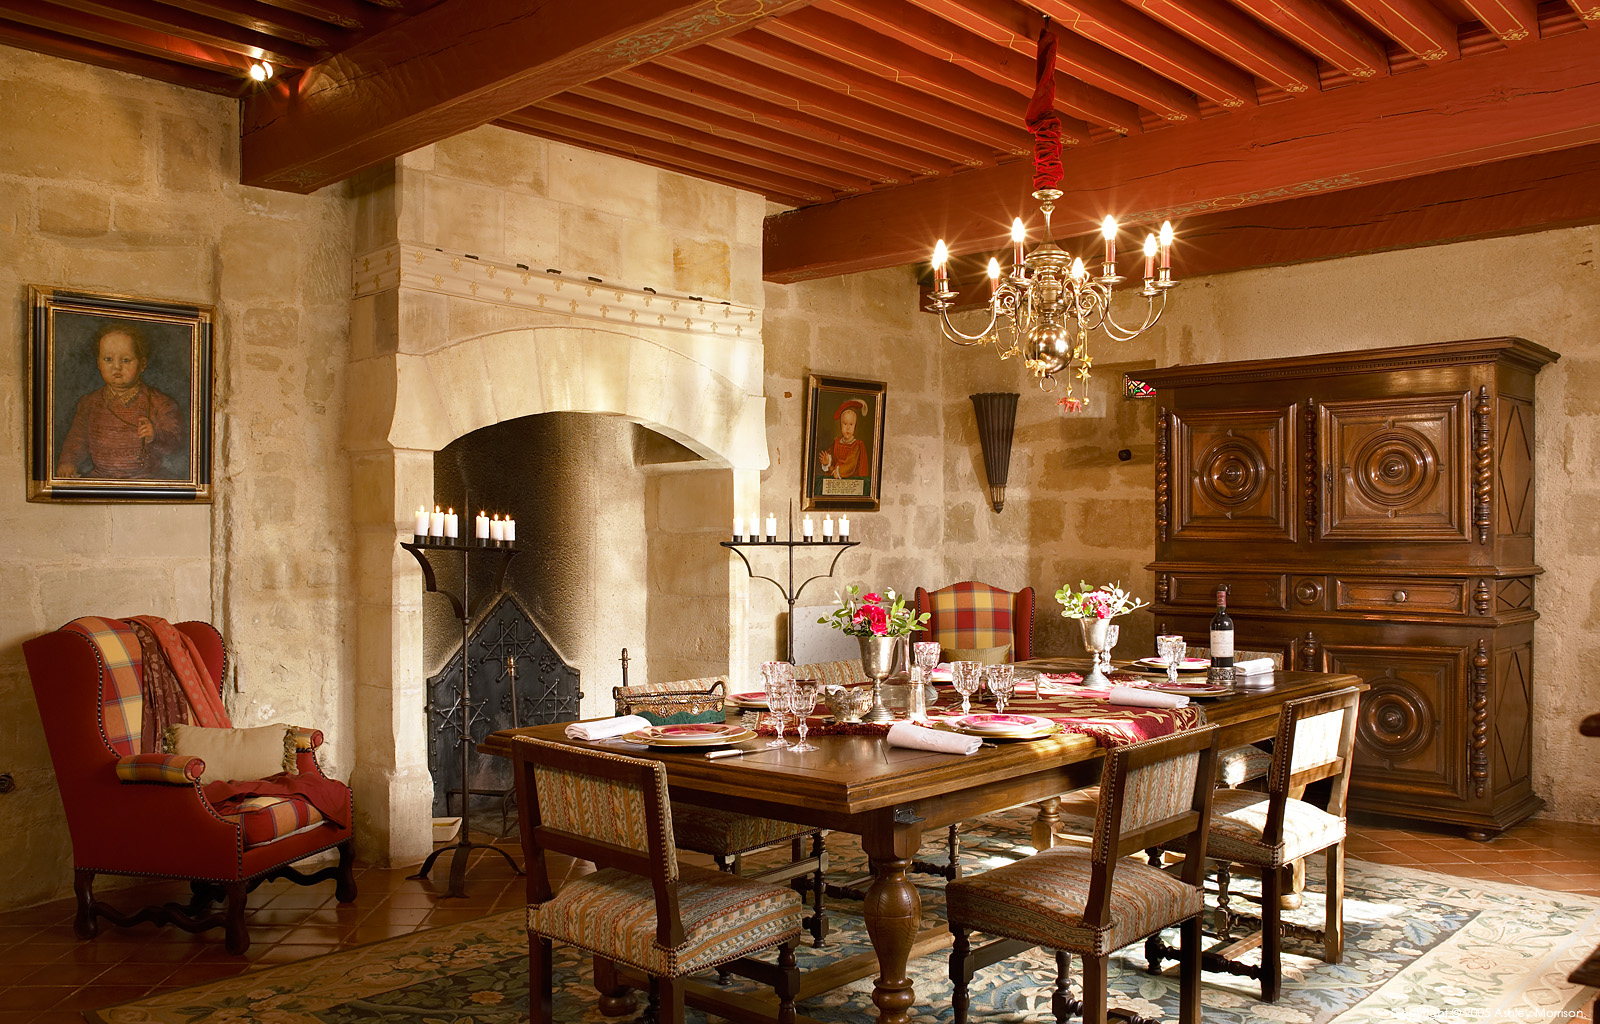 The dining room in Christian Teissier's 13th Century French Chateau in the Dordogne region of France by Ashley Morrison.